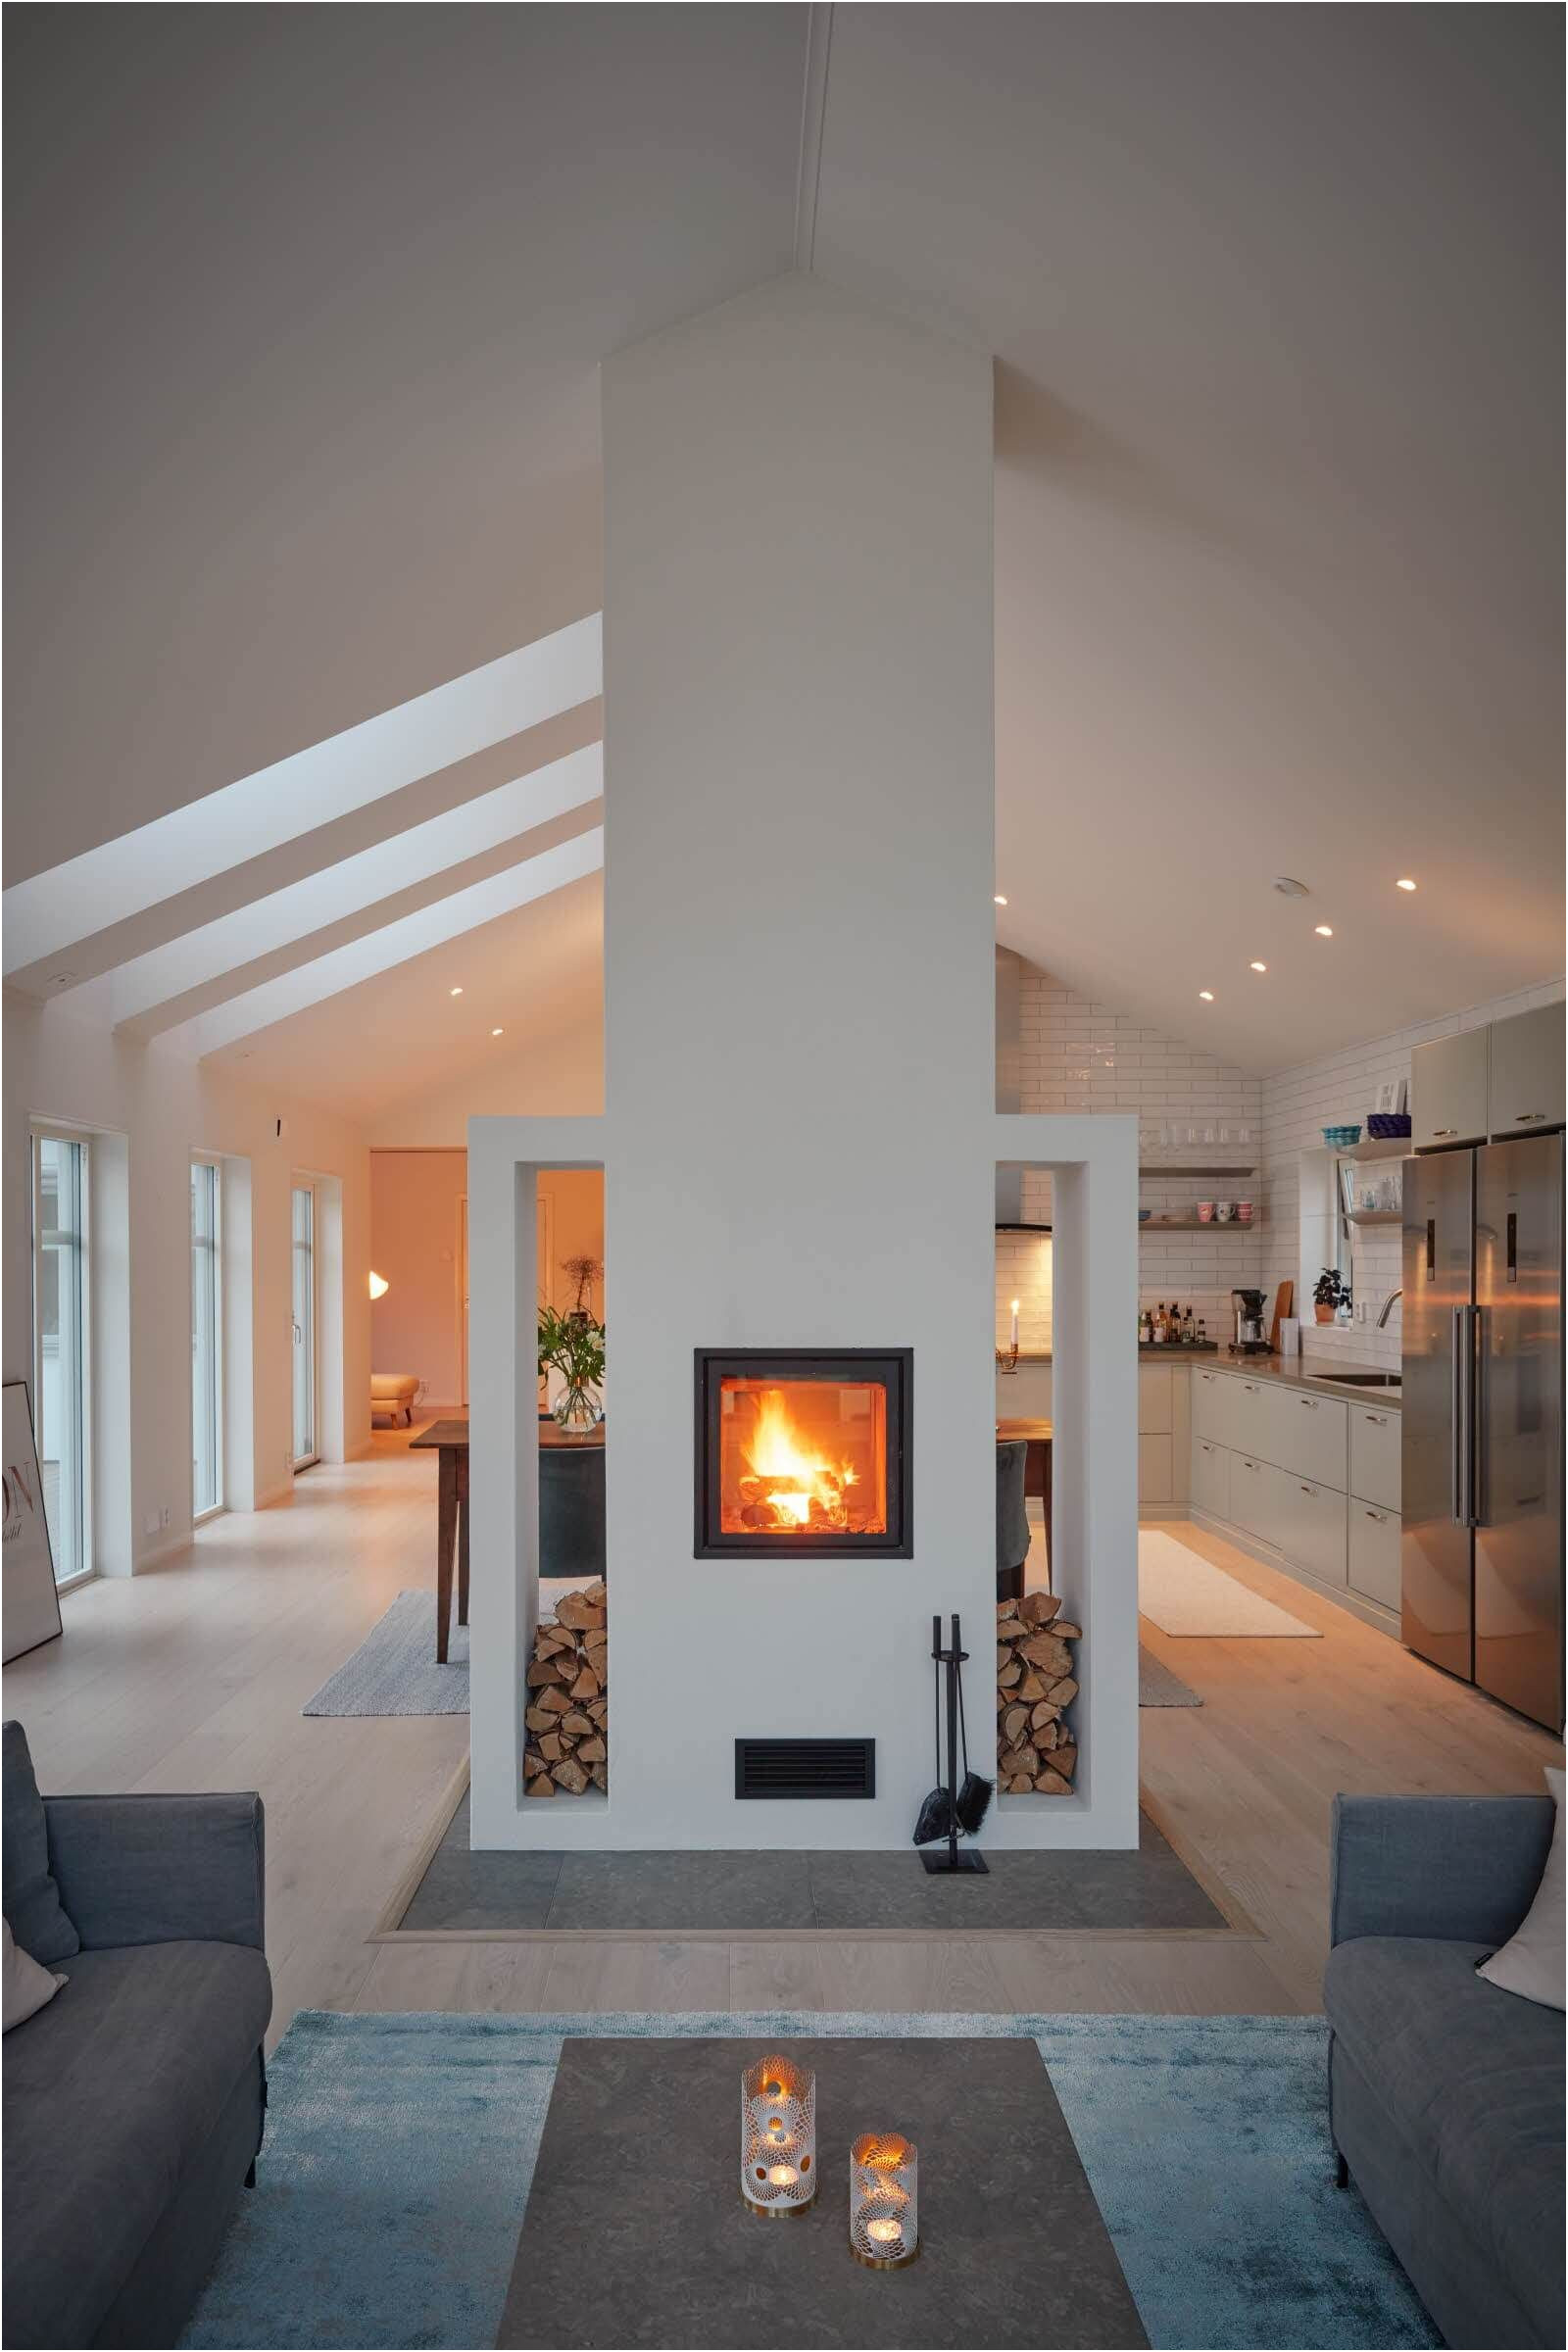 Best Of Fireplace Design Ideas